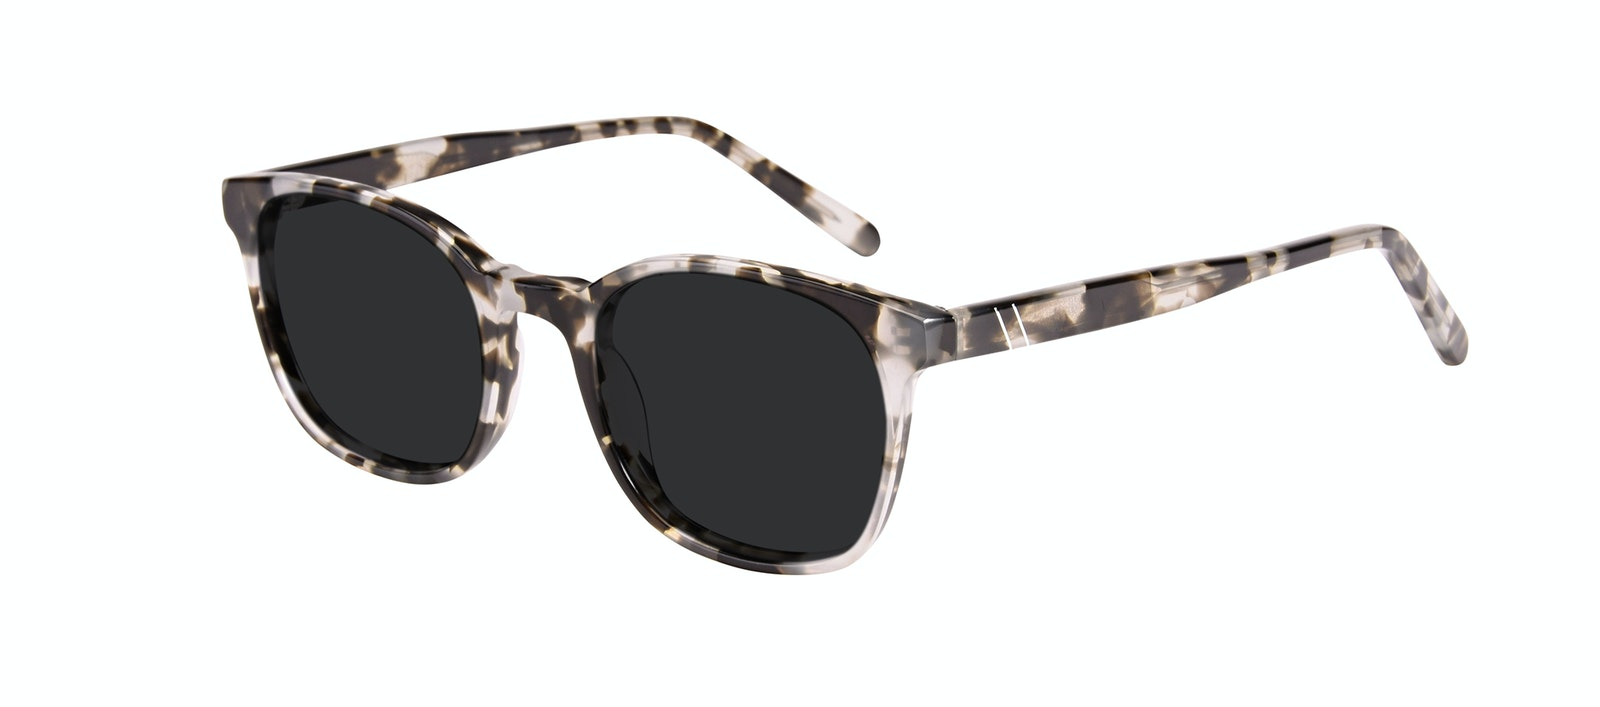 Affordable Fashion Glasses Rectangle Square Sunglasses Men Peak Camo Tort Tilt